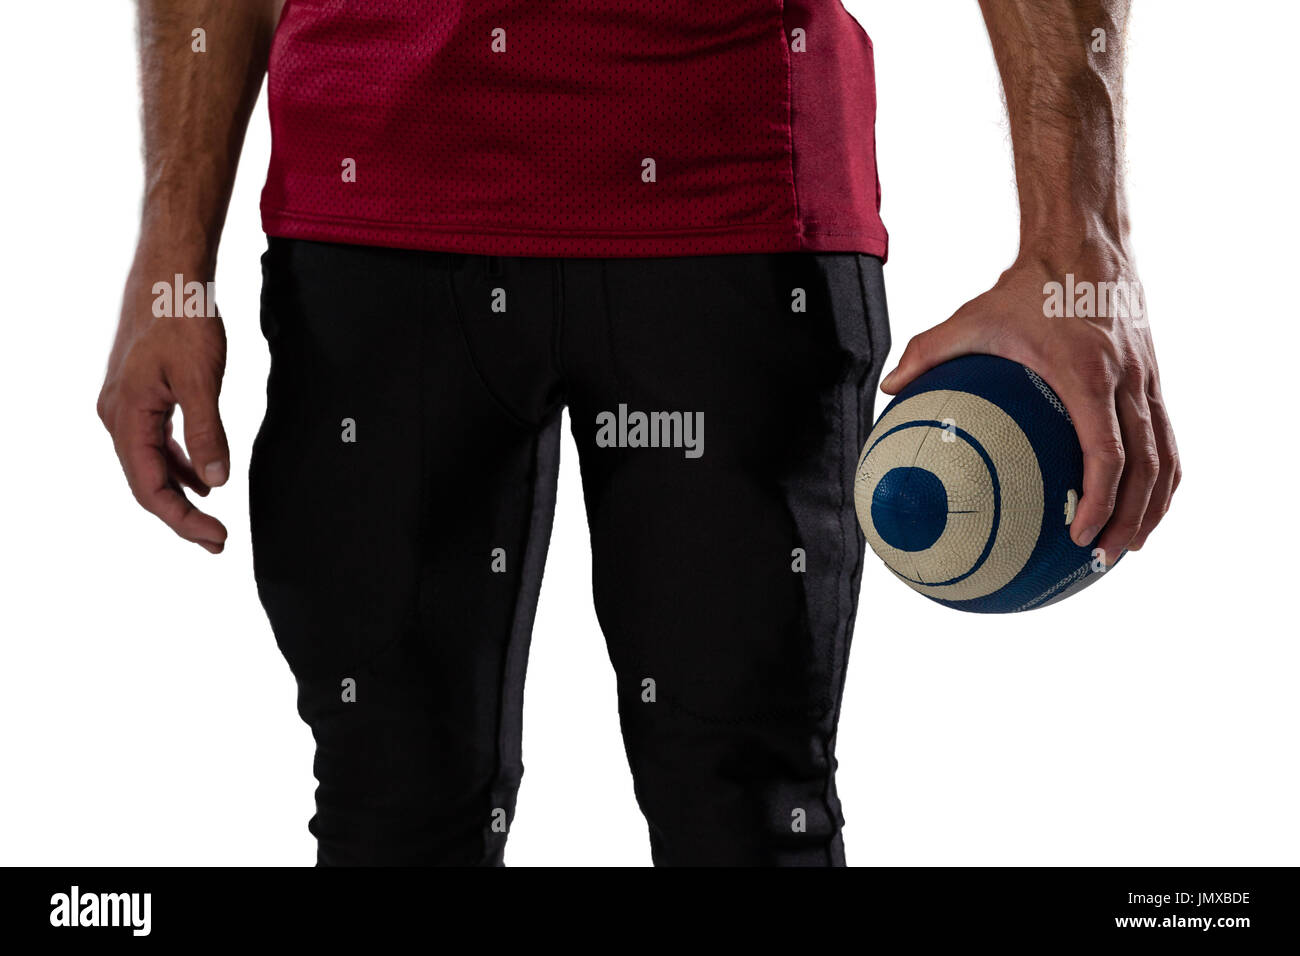 Midsection of sportsperson holding ball against white background Stock Photo